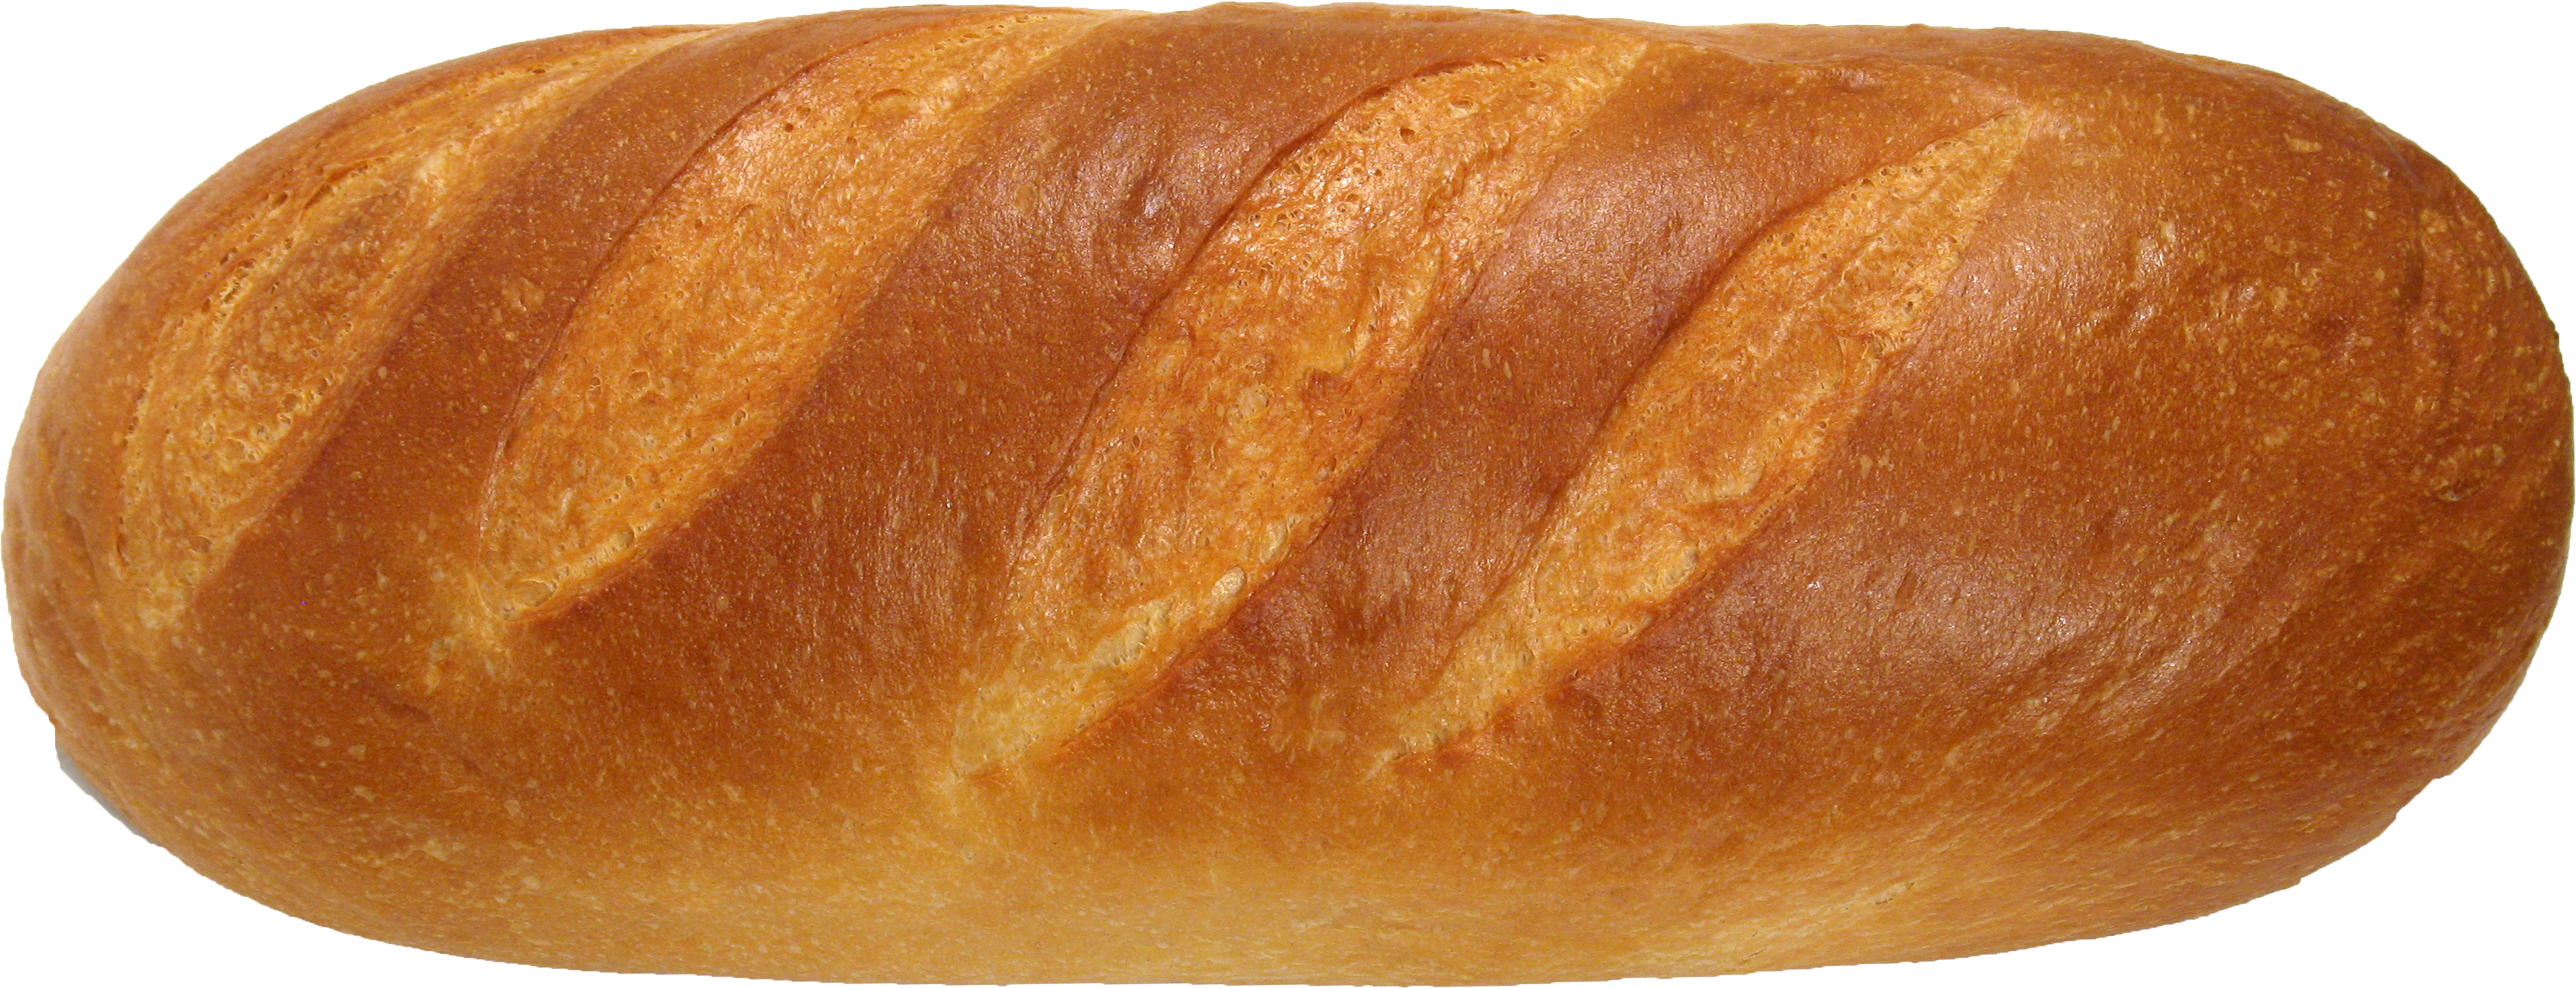 Bread png image purepng. France clipart pastery